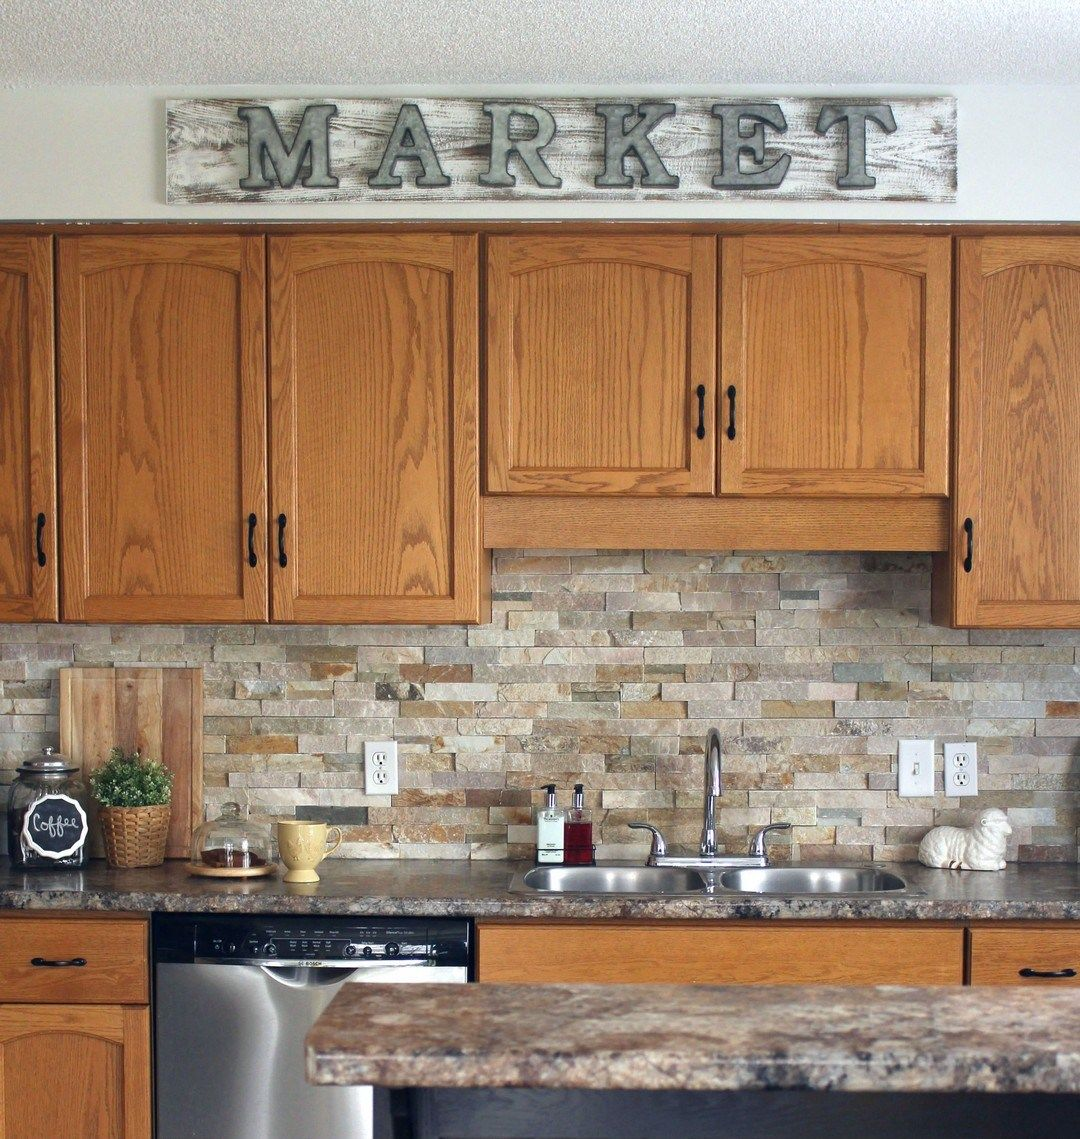 29 Fantastic Kitchen Backsplash Ideas With Oak Cabinets 4